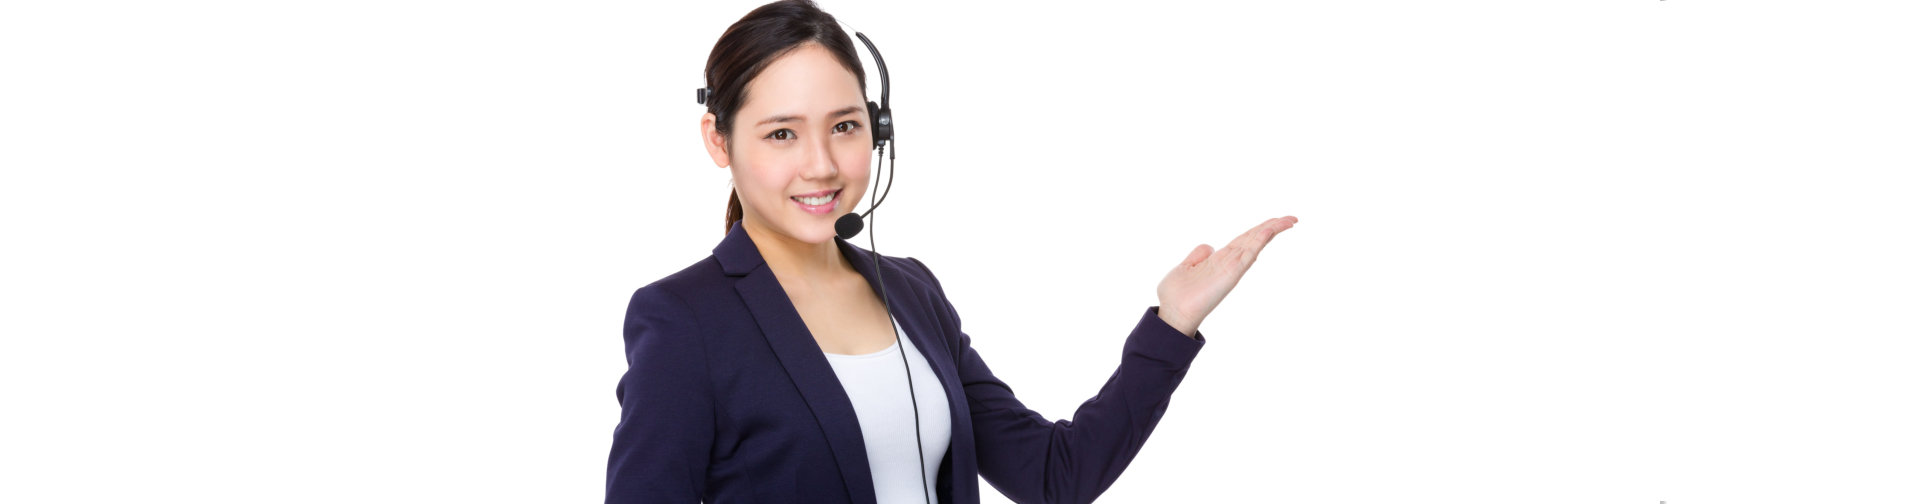 Call center agent with hand presentation